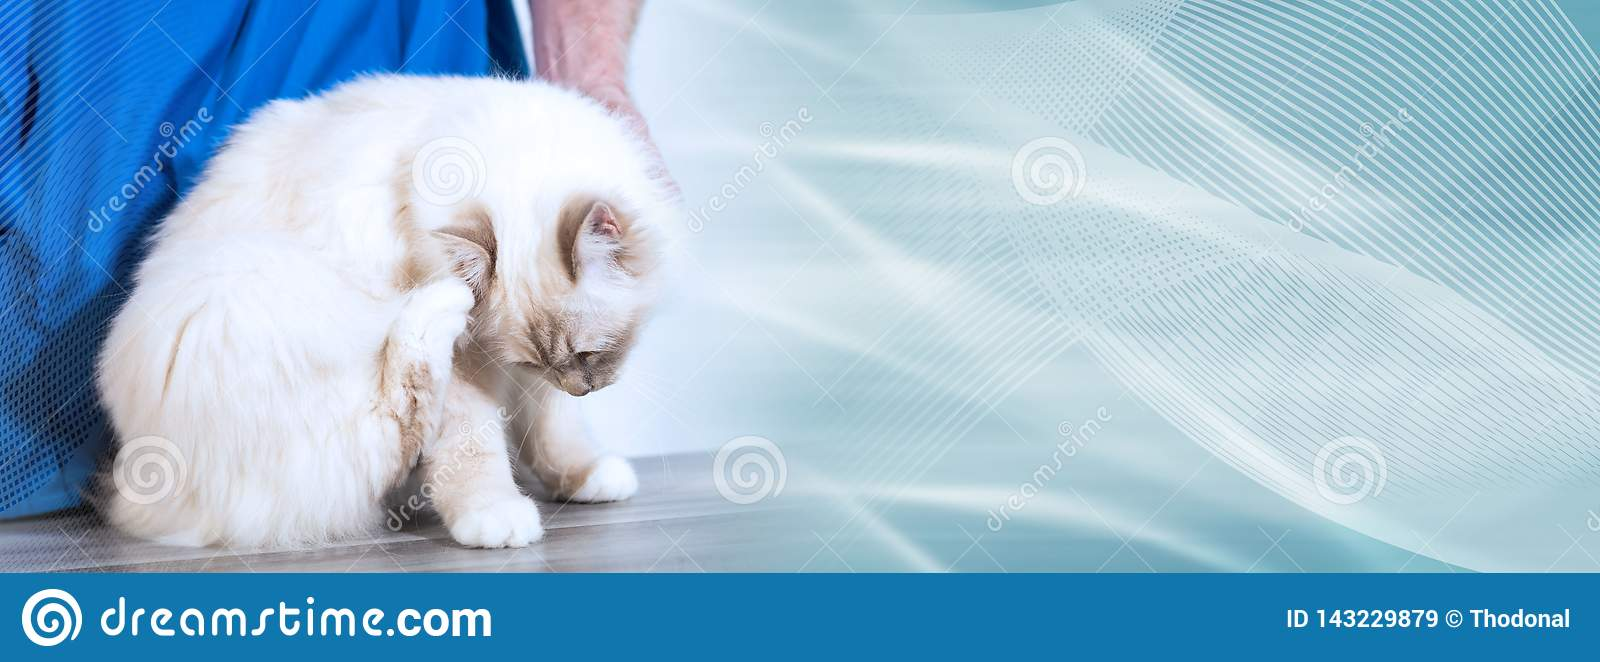 White sacred cat of burma at the vet scratching his head. panoramic banner